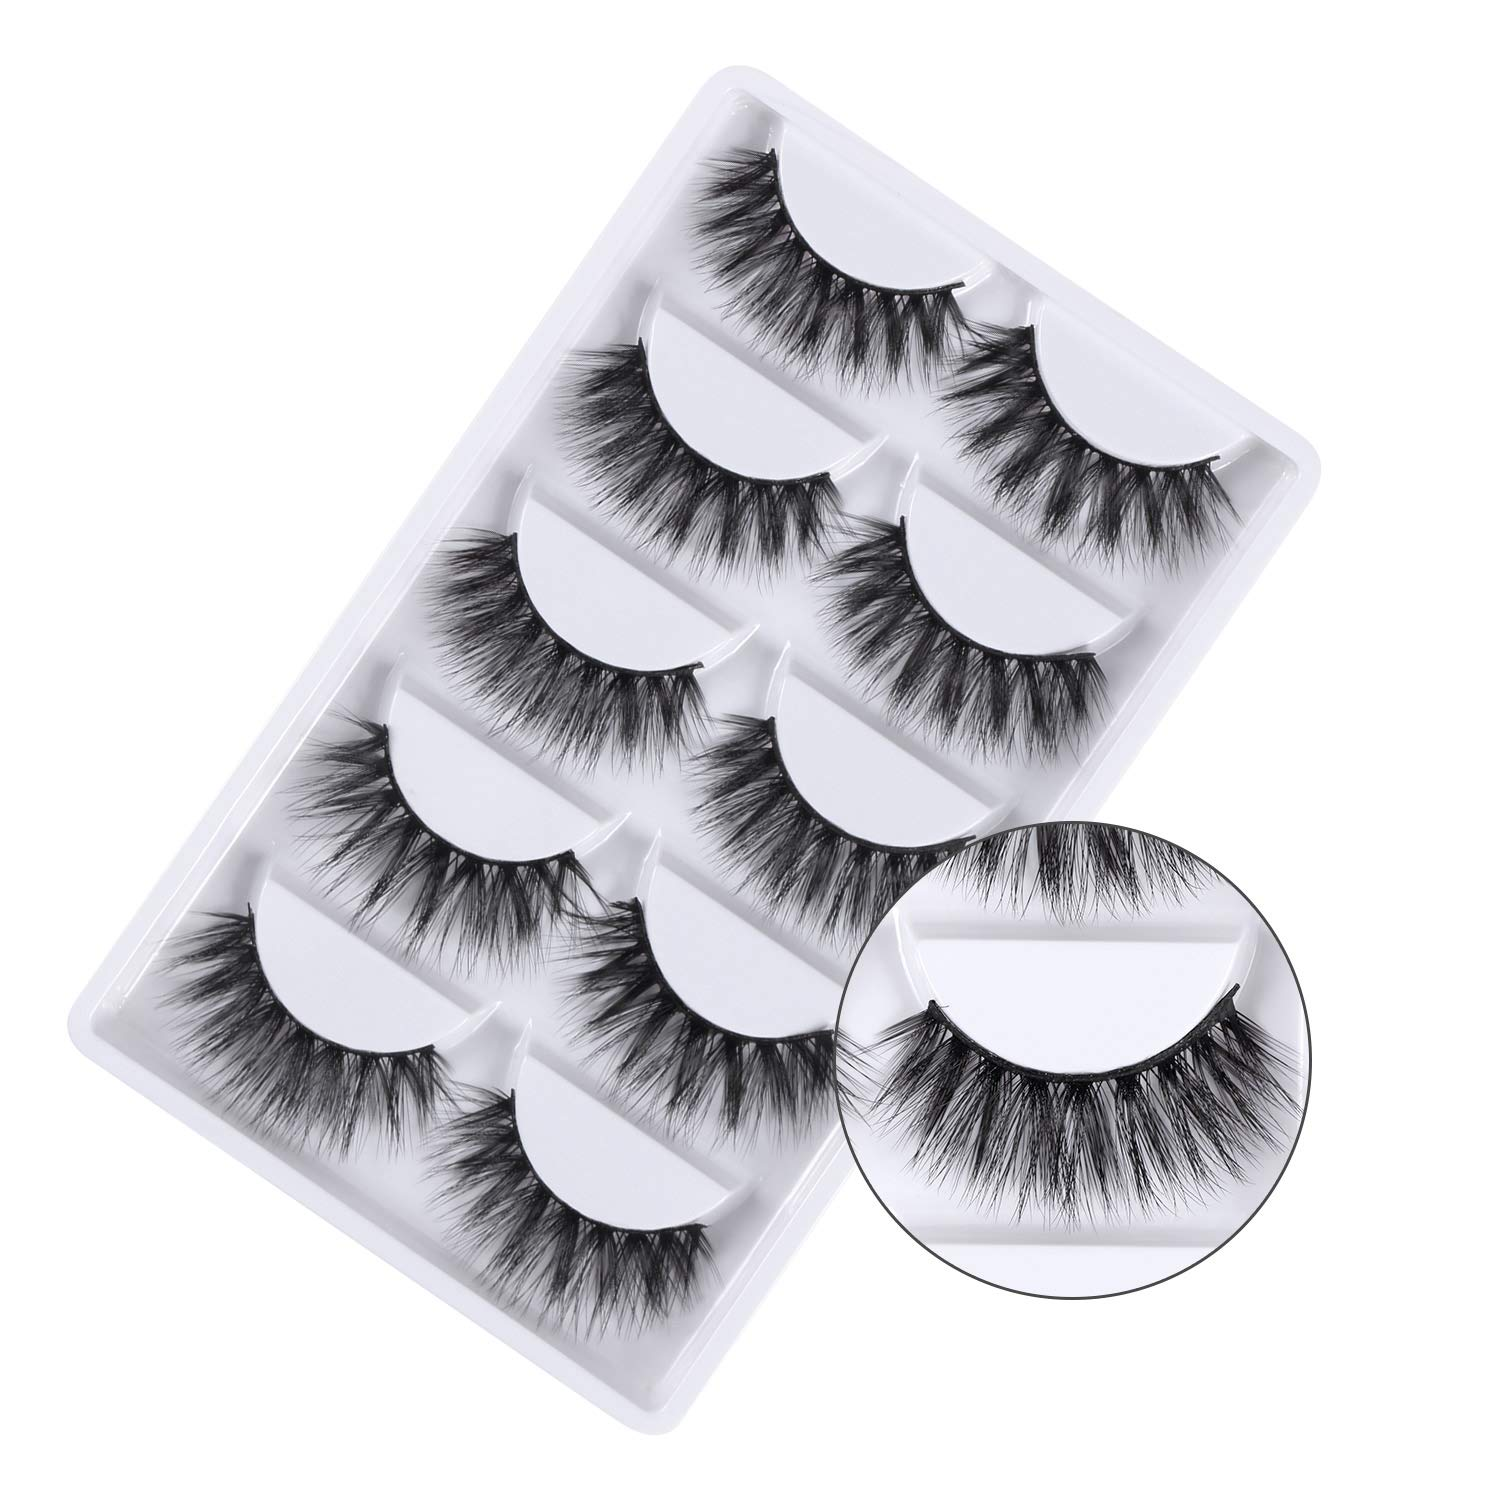 Annomor 3D Faux Mink Fake Eyelashes with a Black Tweezer, Handmade Dramatic Thick Crossed Cluster False Eyelashes Black Nature Fluffy Long Soft Reusable,Style 1 (5 Pairs)